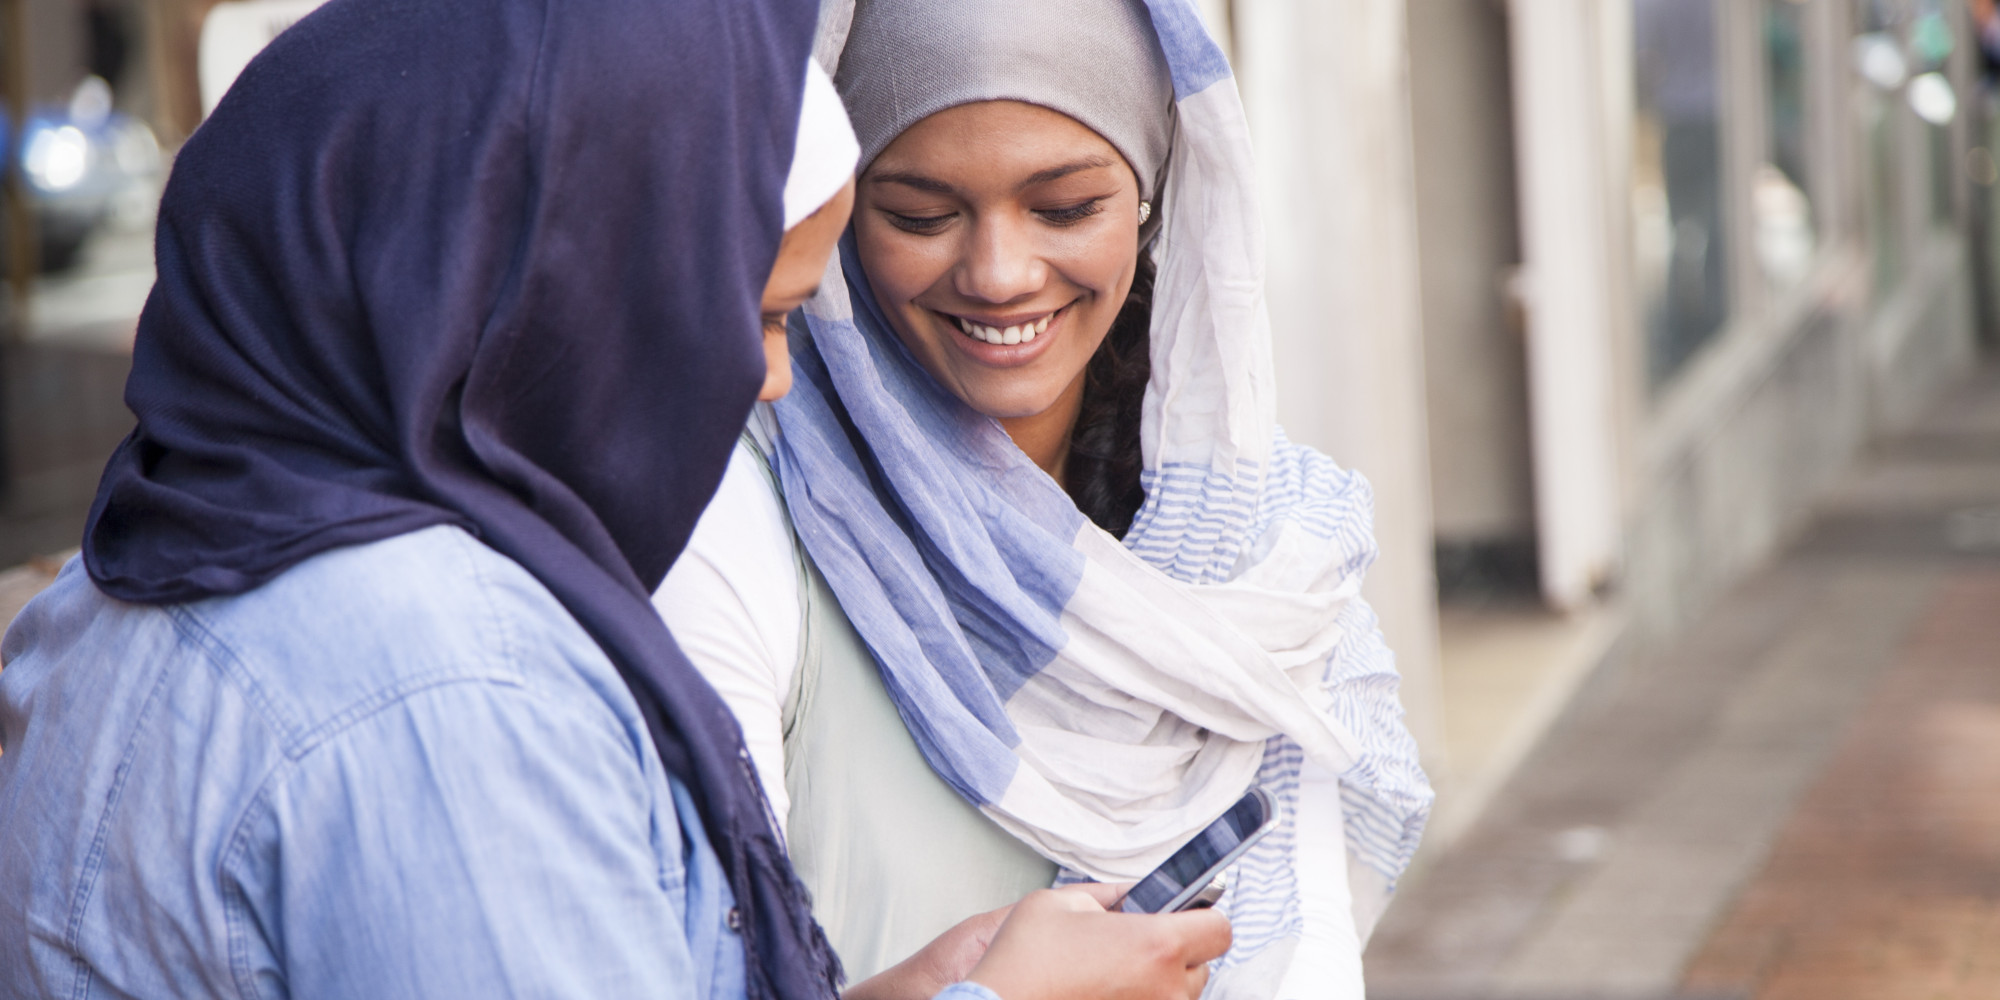 mableton muslim single women Looking for senior muslim women or men local senior muslim dating service at idating4youcom find senior muslim singles register now for speed dating, use it.